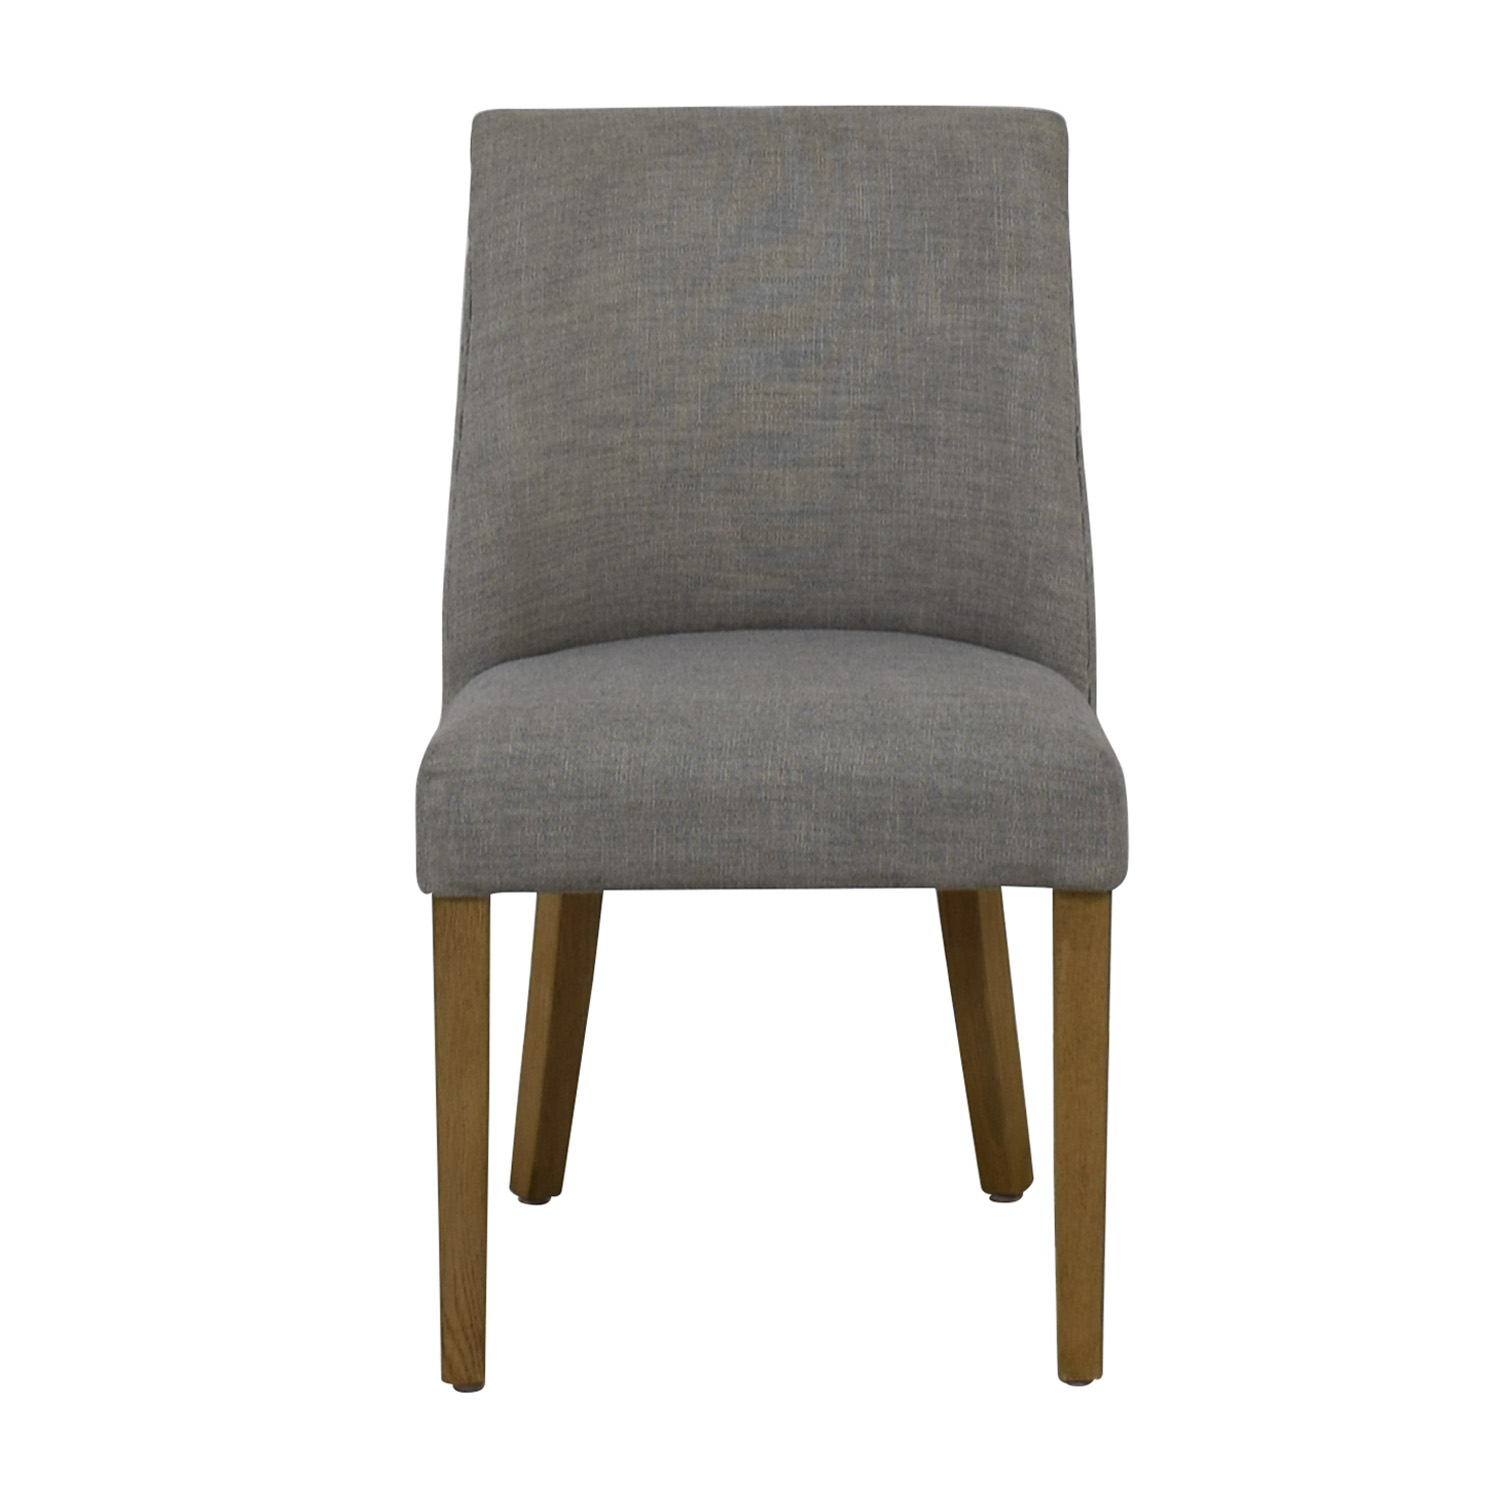 Restoration Hardware Restoration Hardware 1940S French Barrelback Fabric Side Chair used